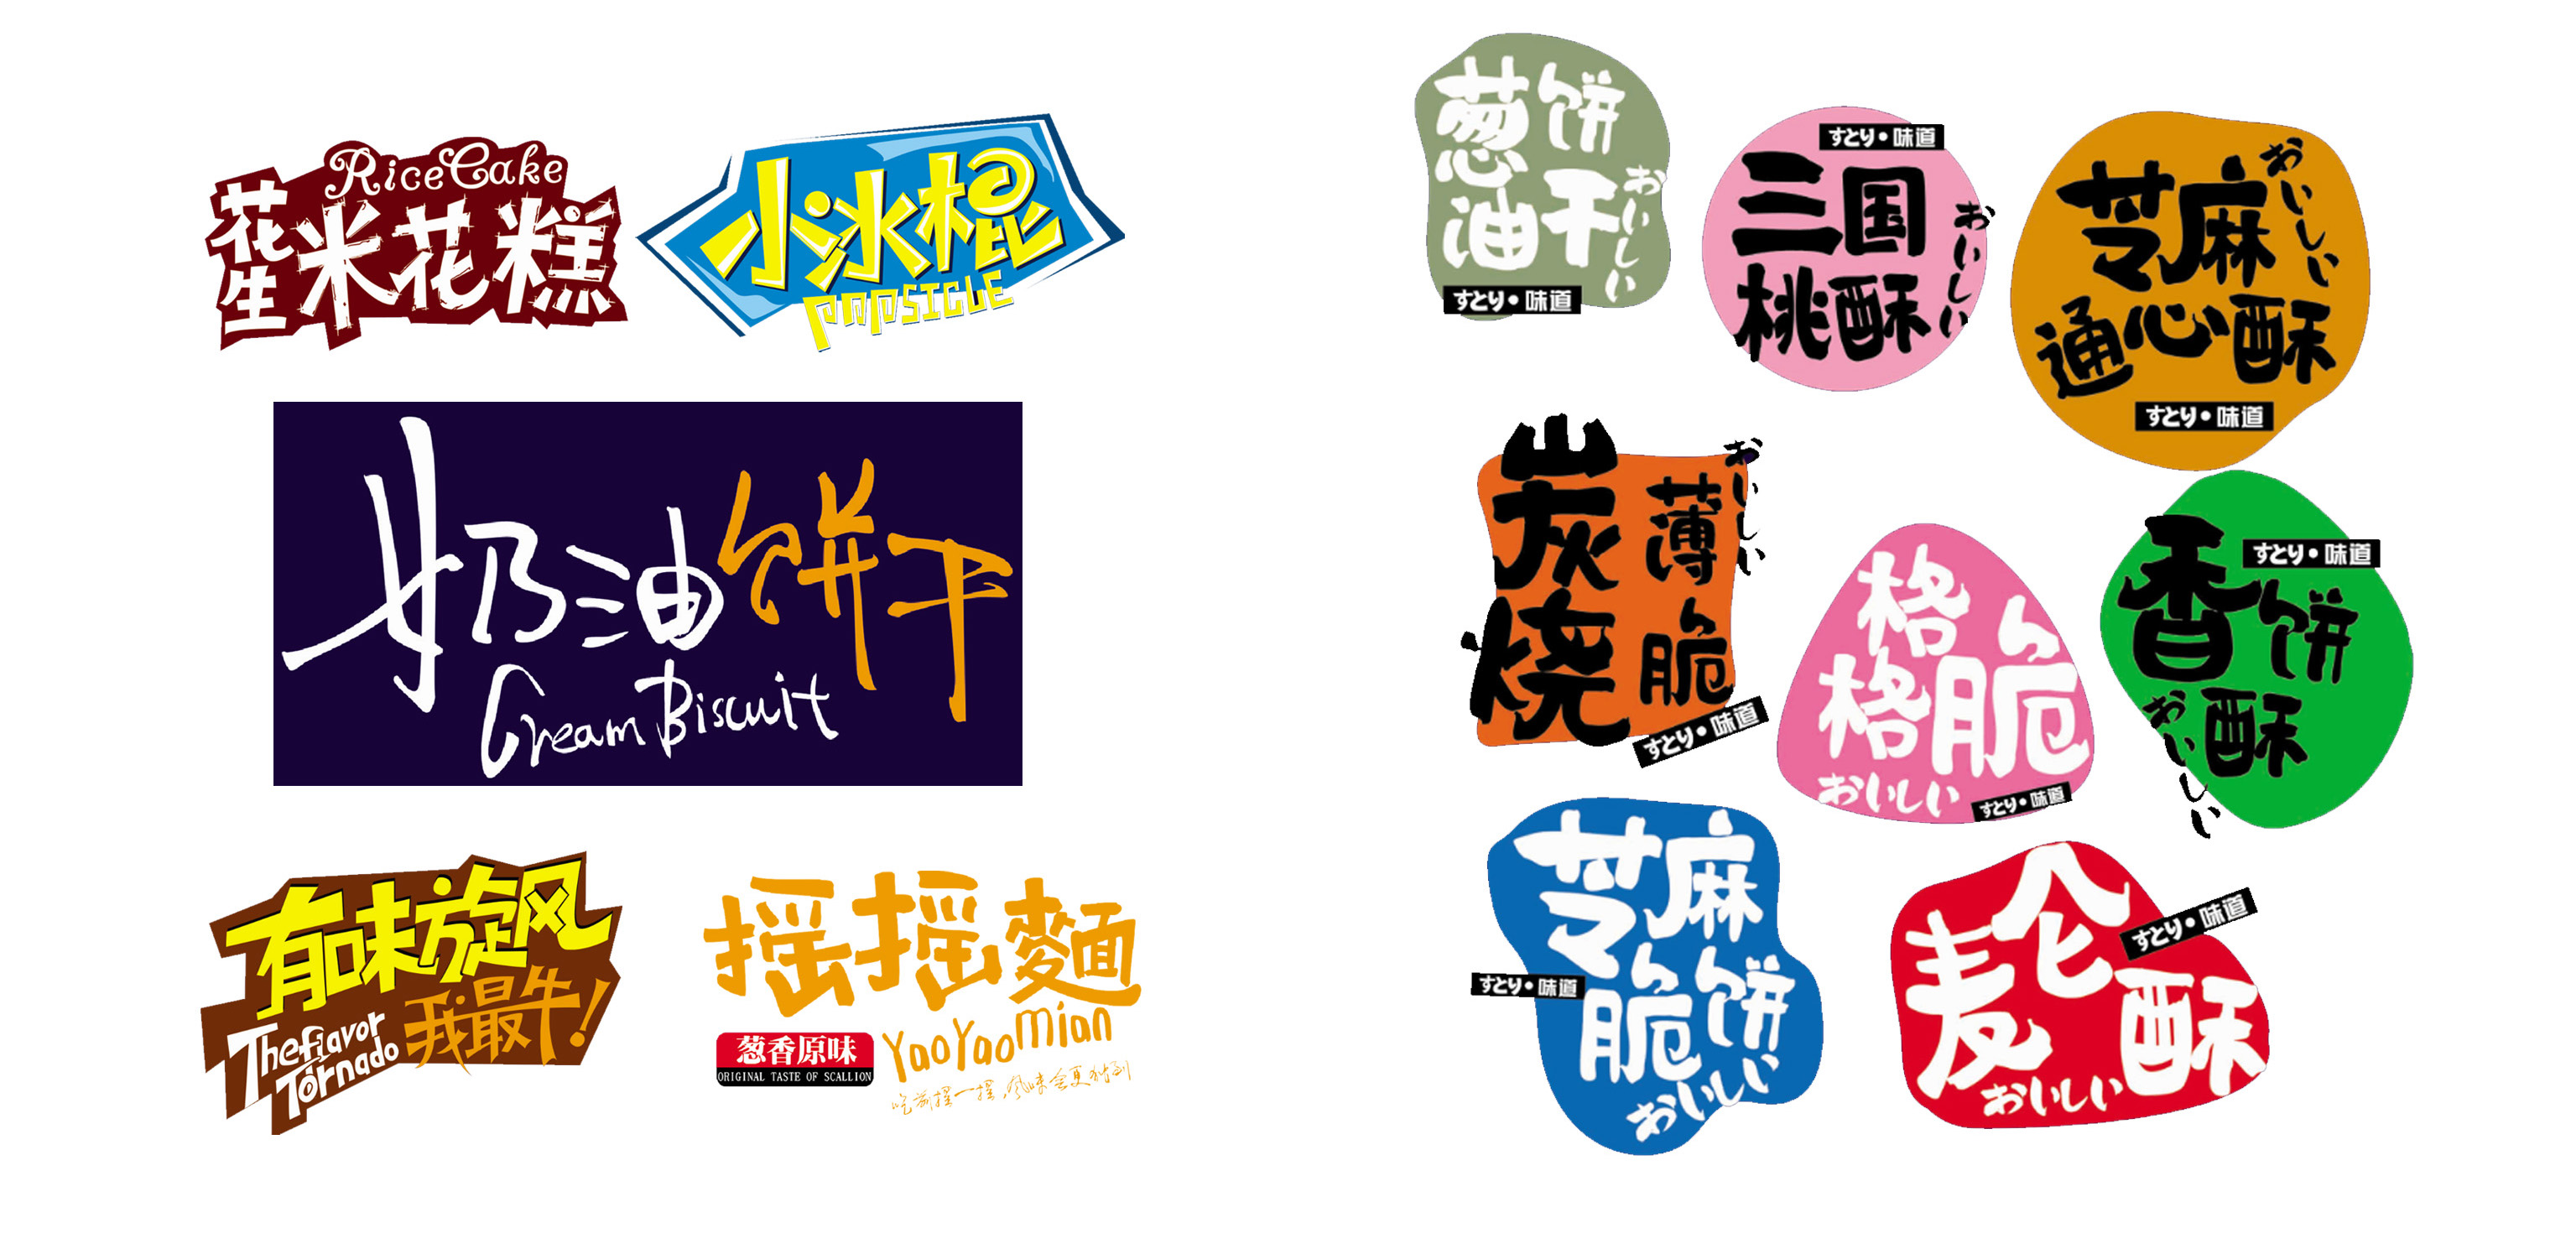 chinesefontdesign.com 2017 06 10 13 53 52 906186 Design of Fonts on Food Packaging China Logo design